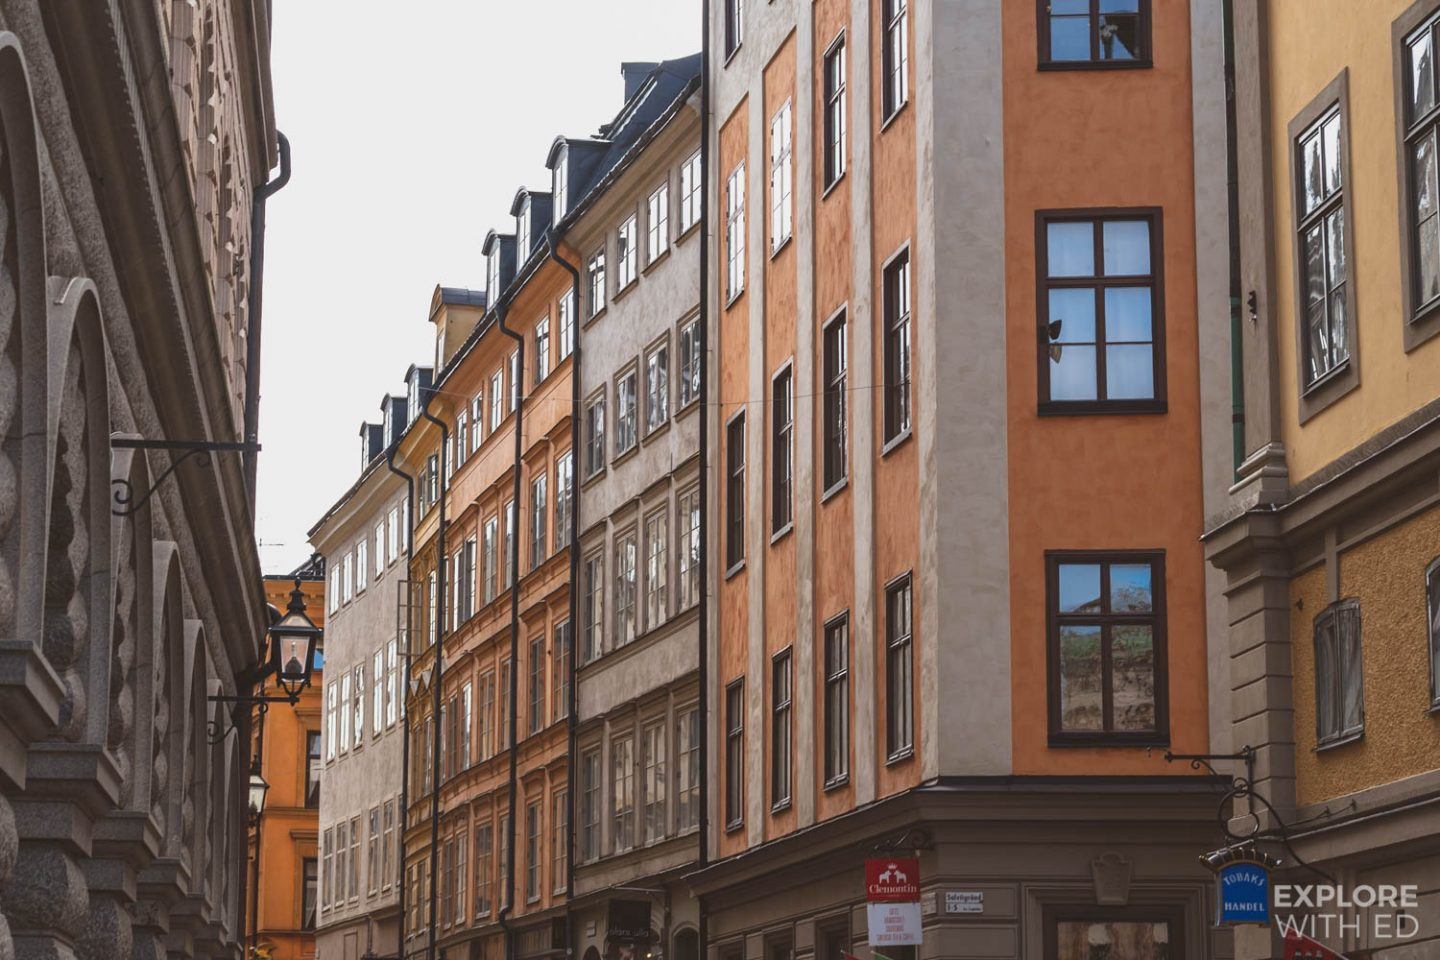 Characterful streets of Gamla Stan, Stockholm